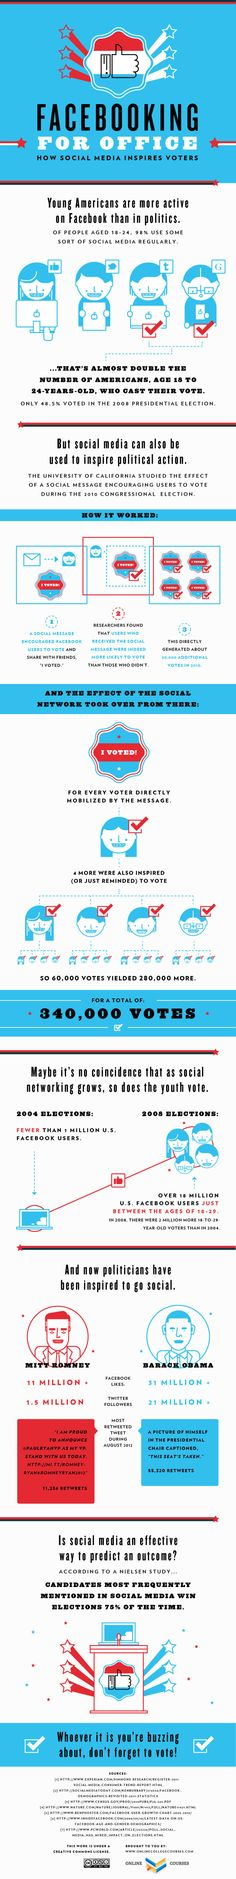 Young Voters Inspired By Facebook –Infographic